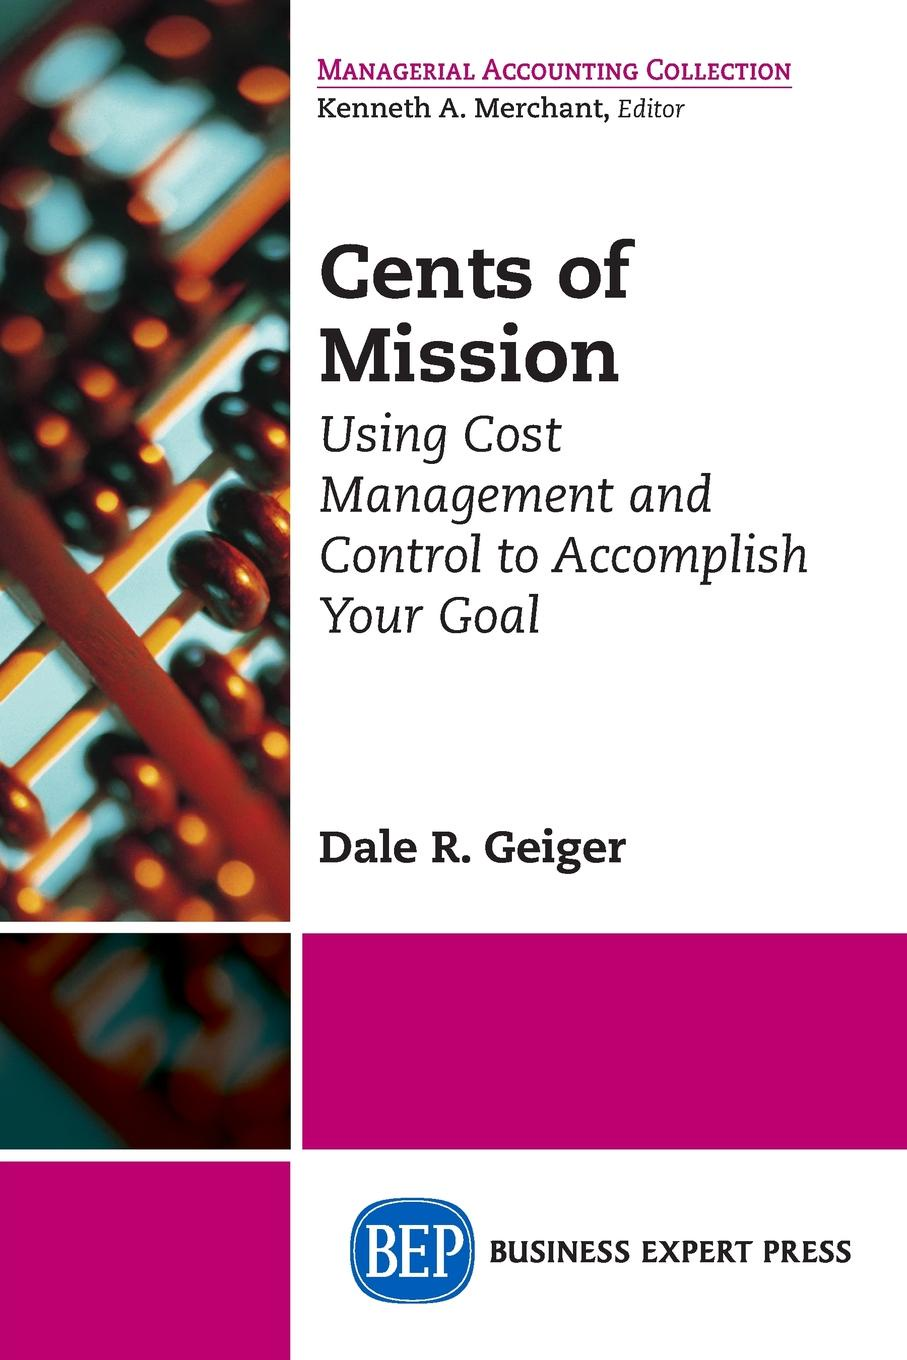 Dale R. Geiger. Cents of Mission. Using Cost Management and Control to Accomplish Your Goal